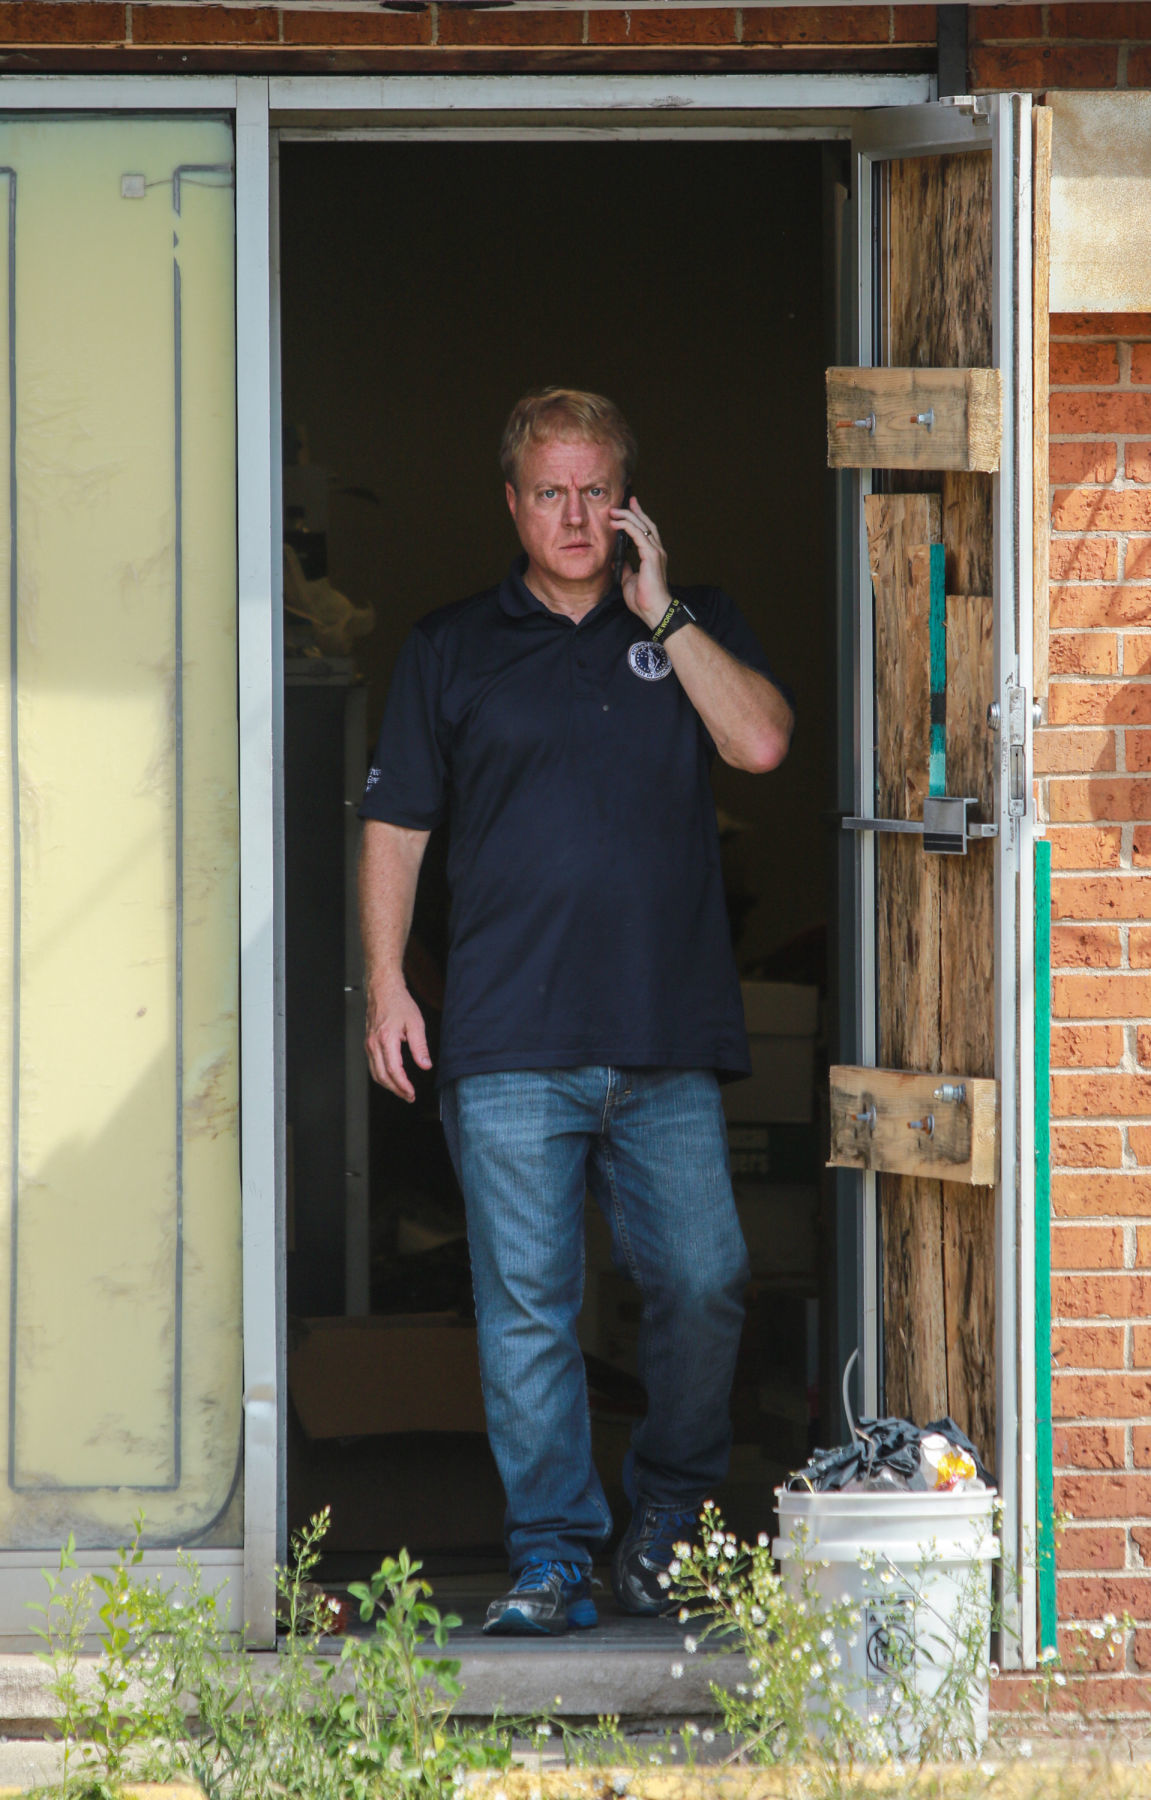 Search for evidence at former abortion clinic